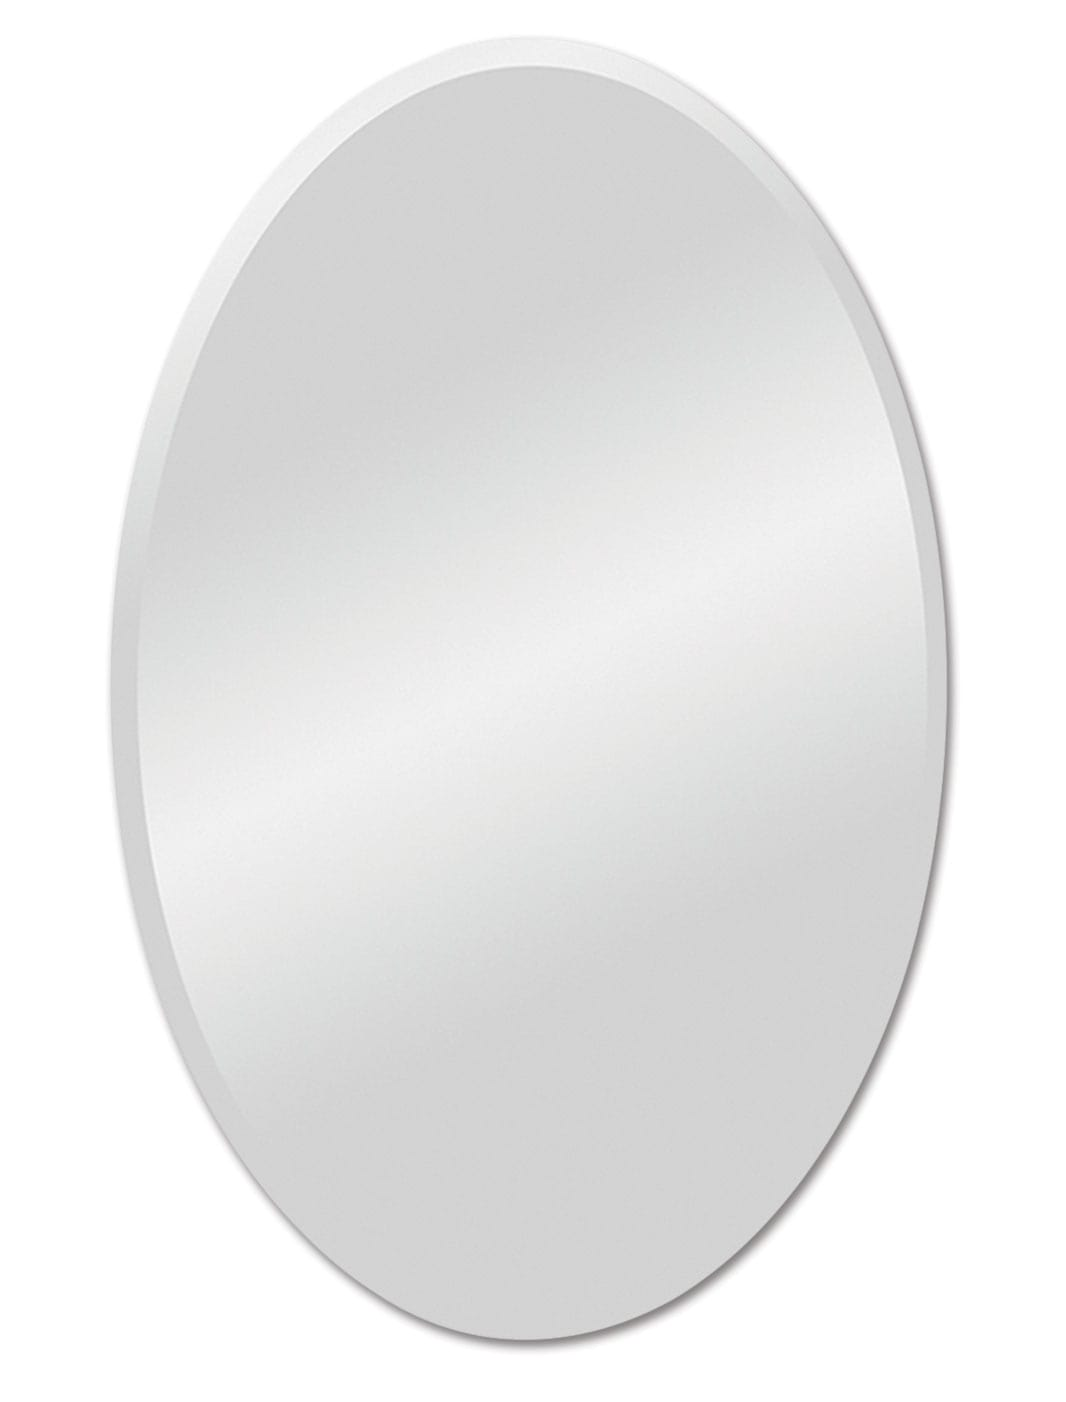 Home Accessories - Yen Mirror